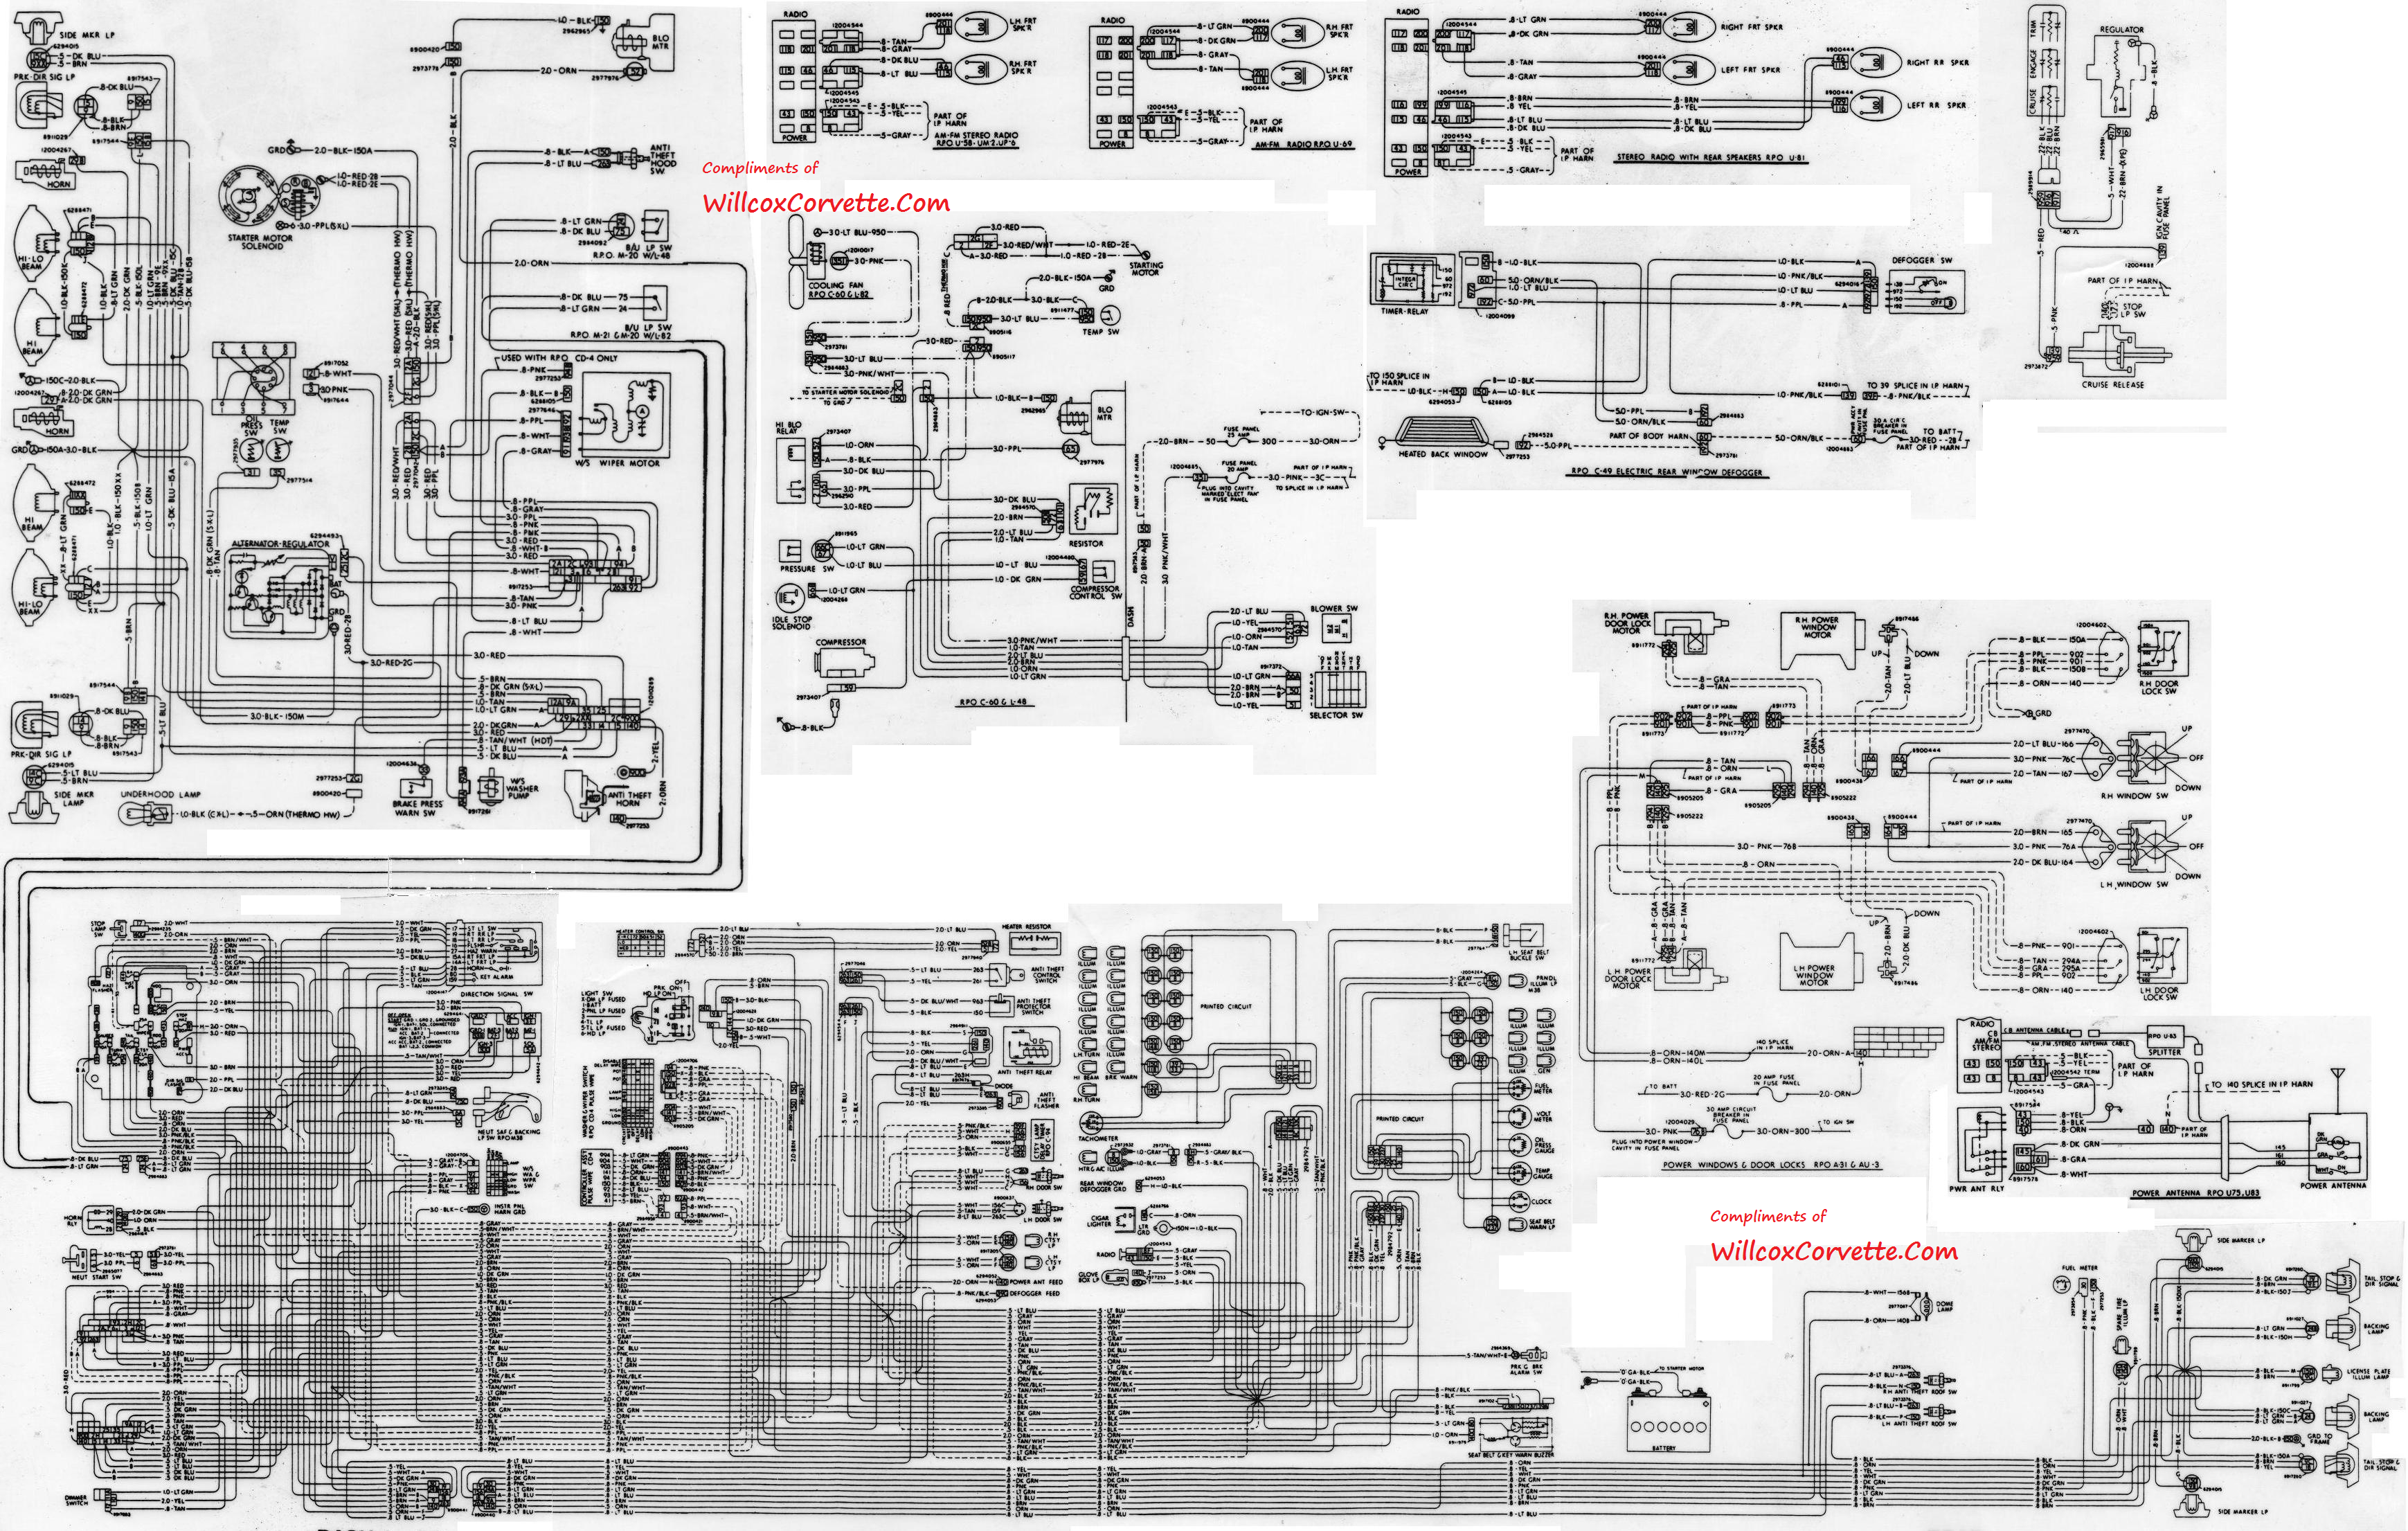 dome light not working - corvetteforum - chevrolet ... 1979 corvette alternator wiring diagram